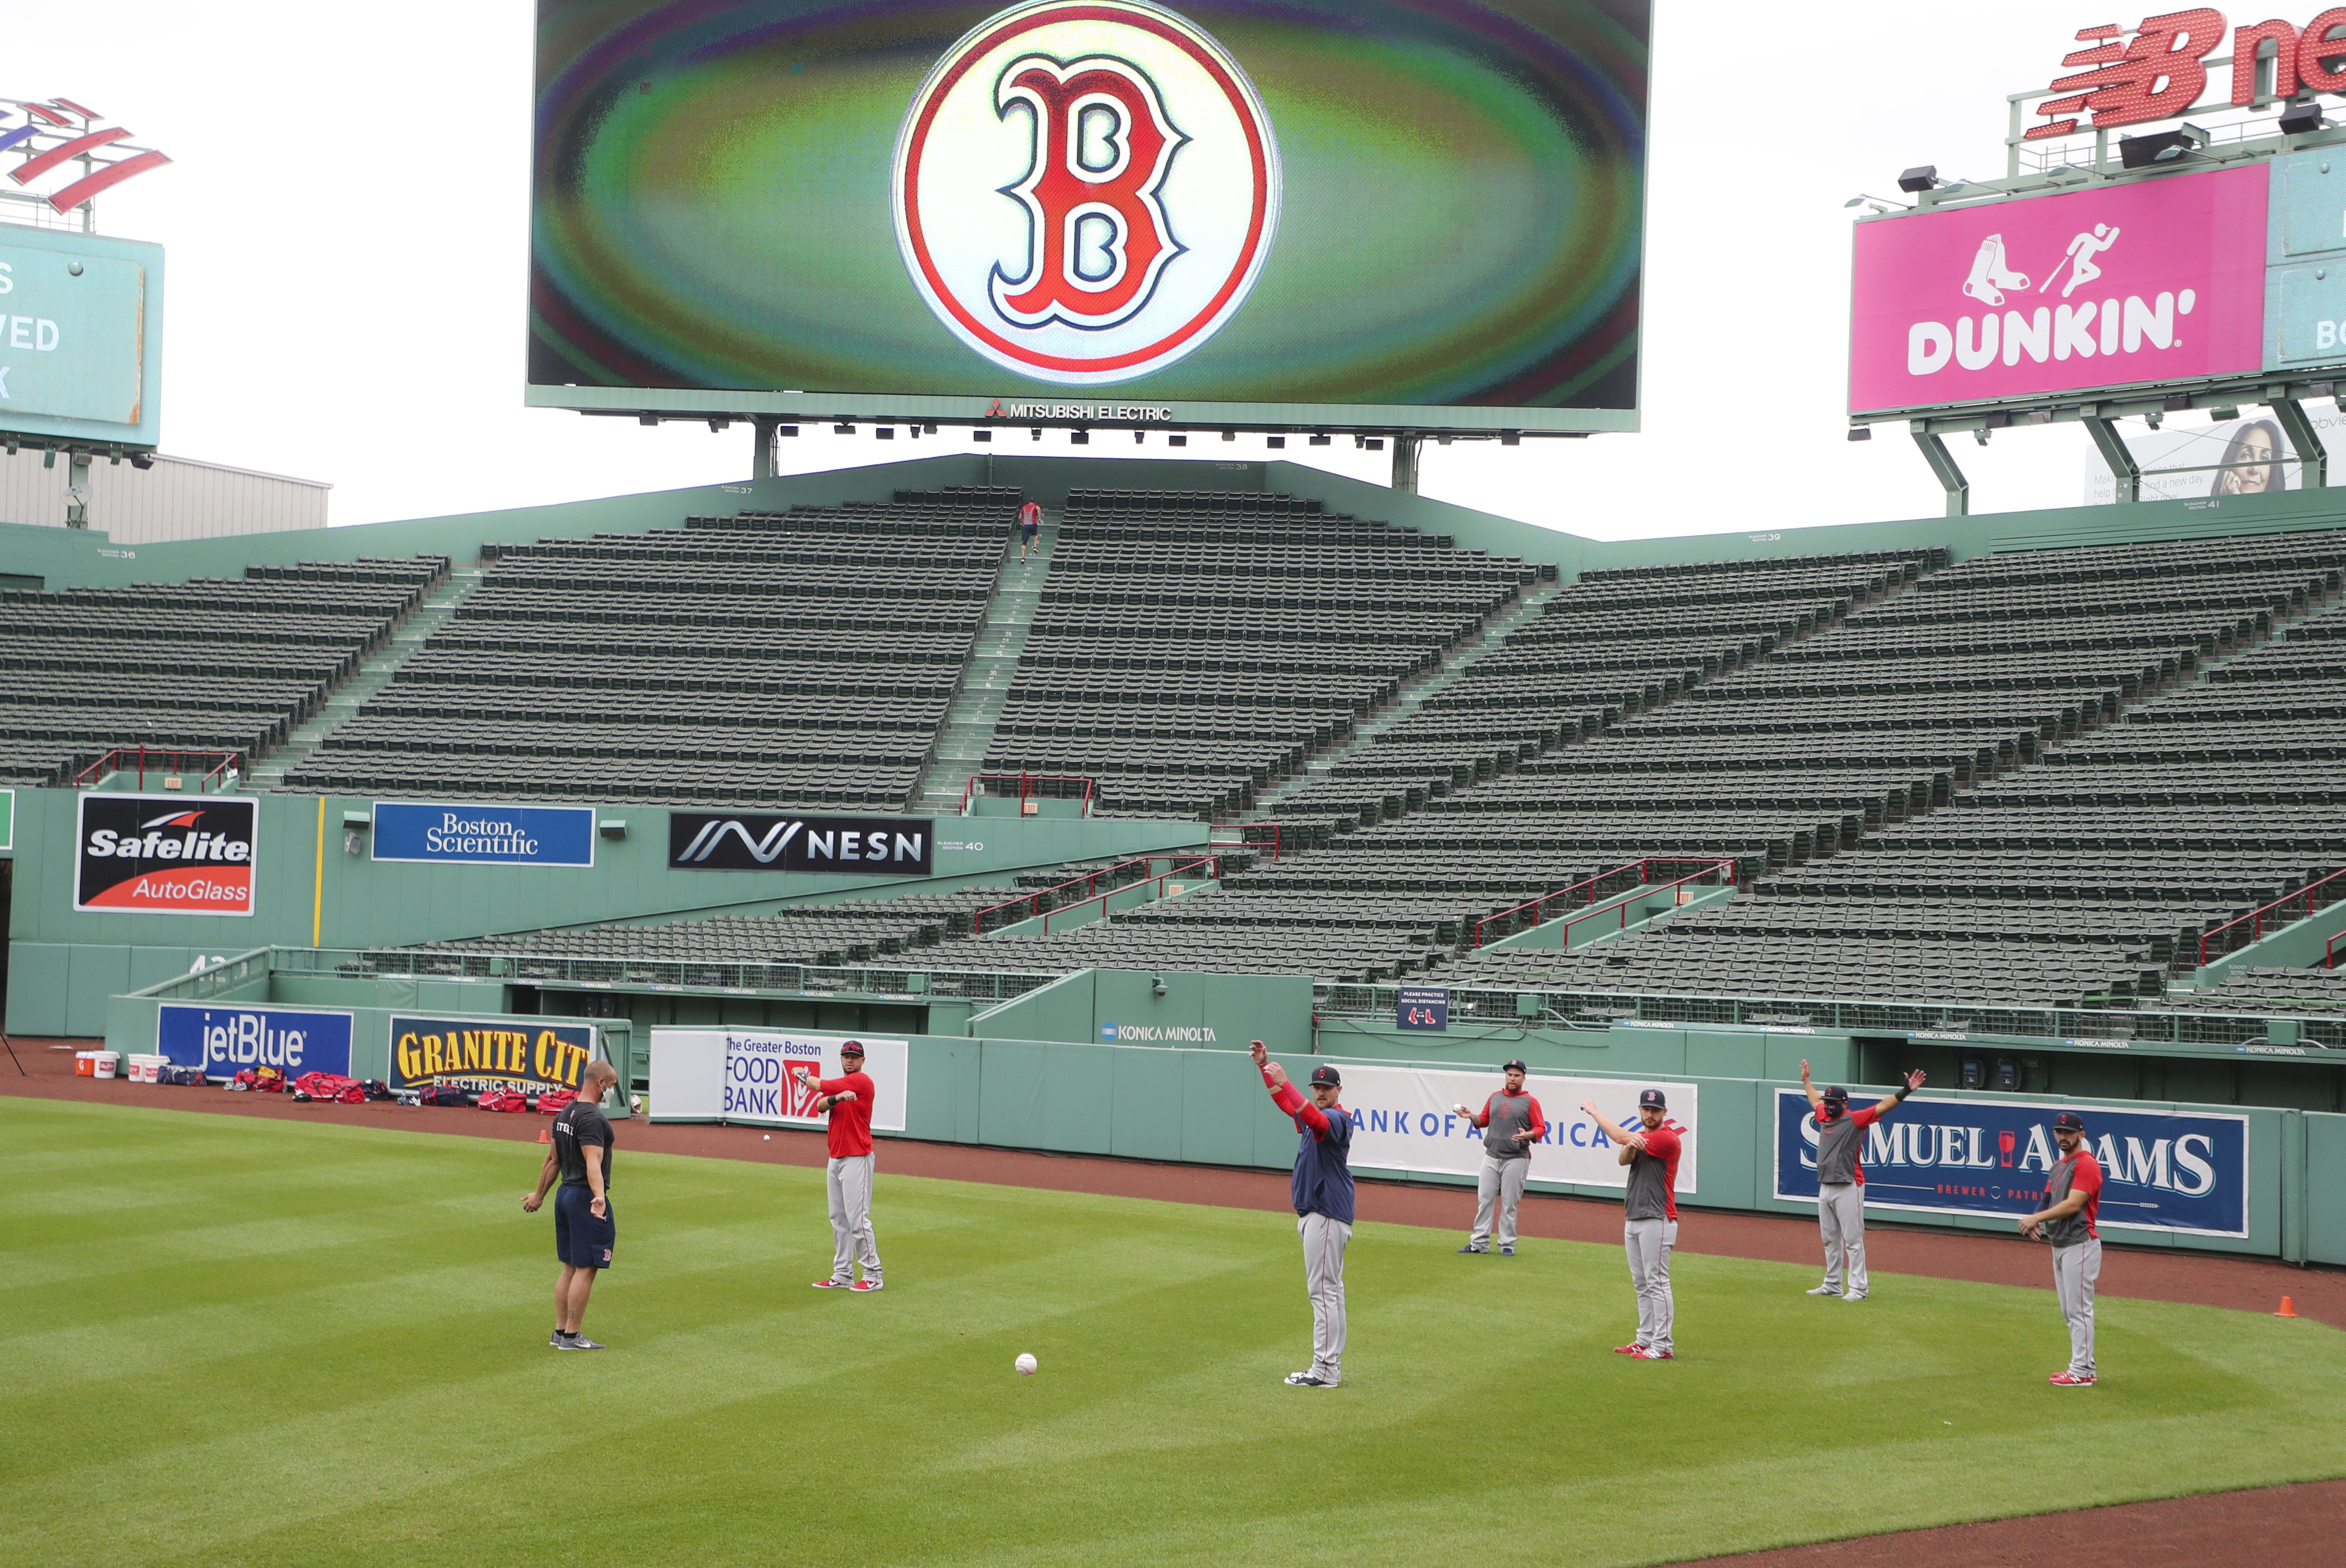 2020 Christmas At Fenway Red Sox' 2020 schedule begins July 24 at Fenway Park vs. Orioles